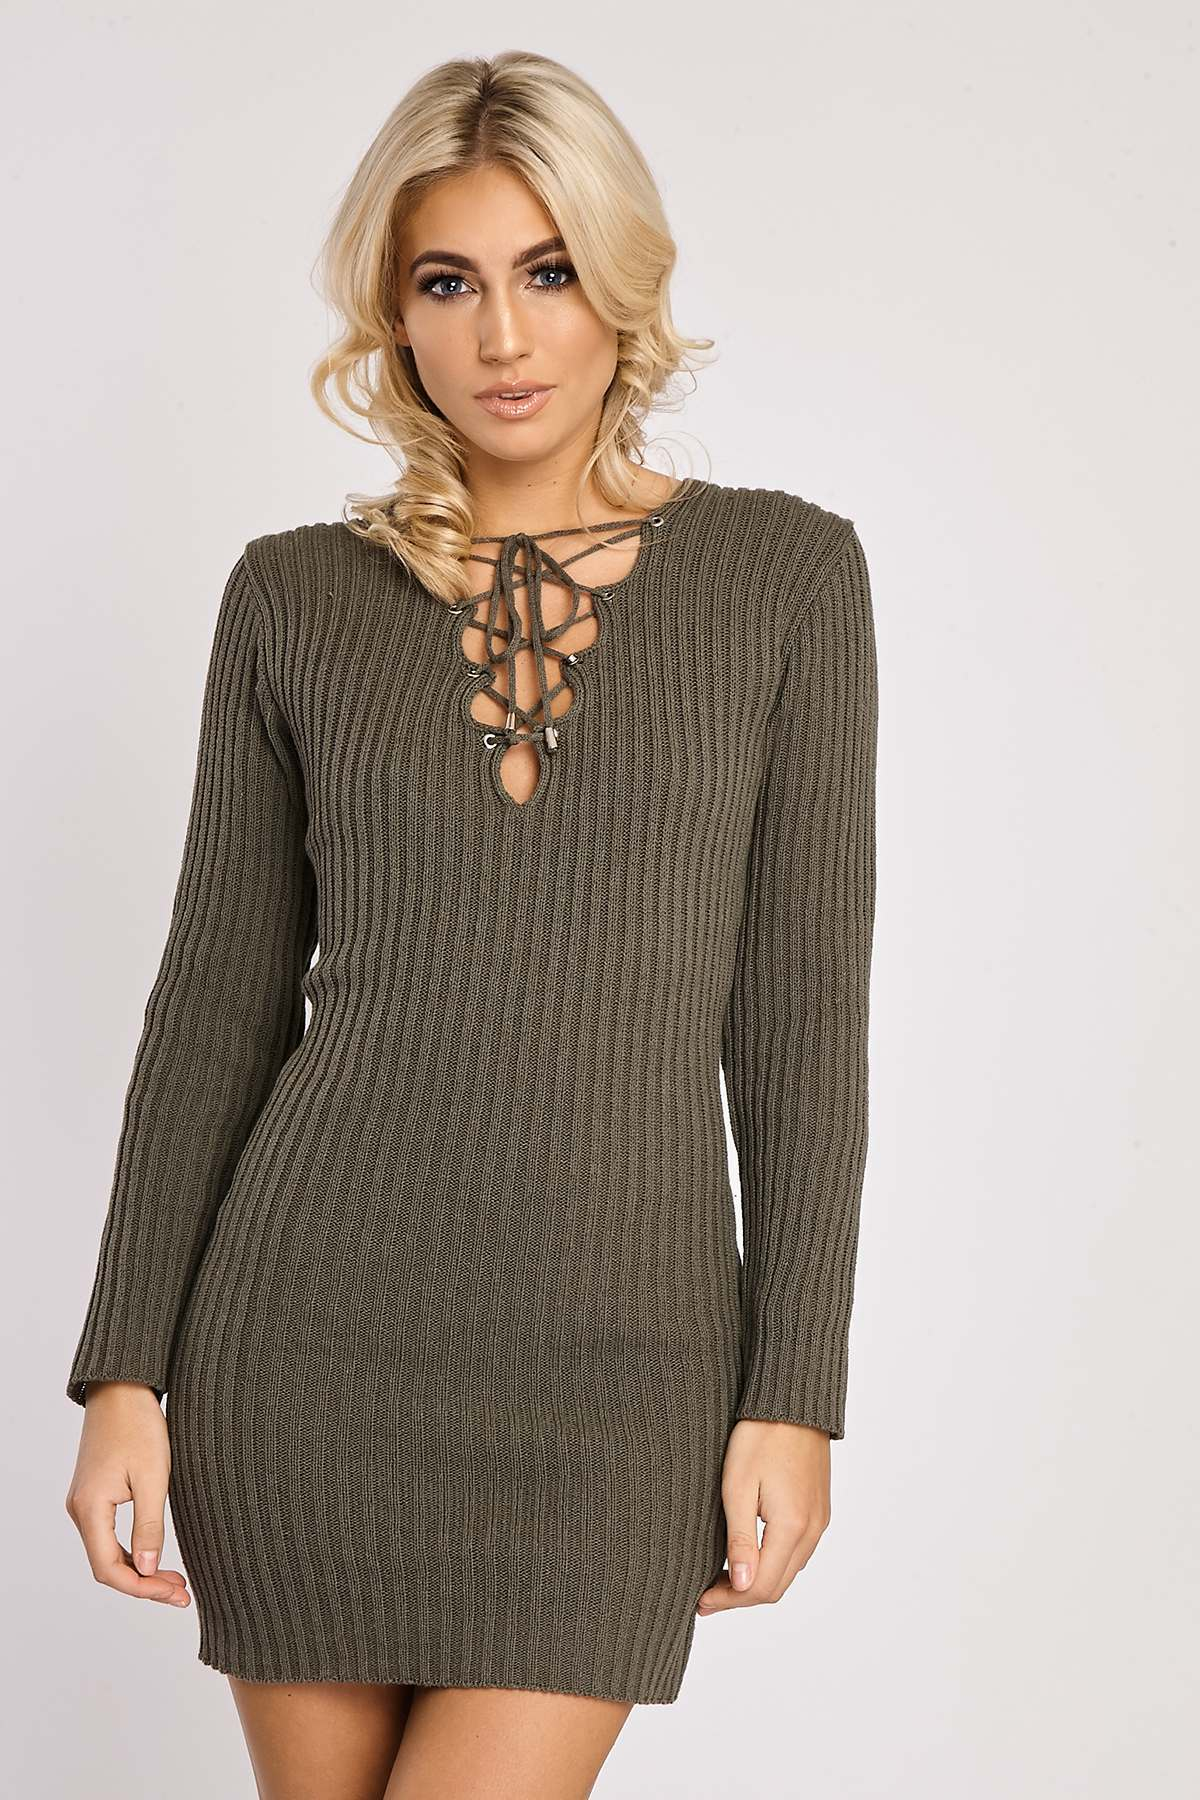 Khaki Dresses  Rabiya Khaki Lace Up Knitted Dress